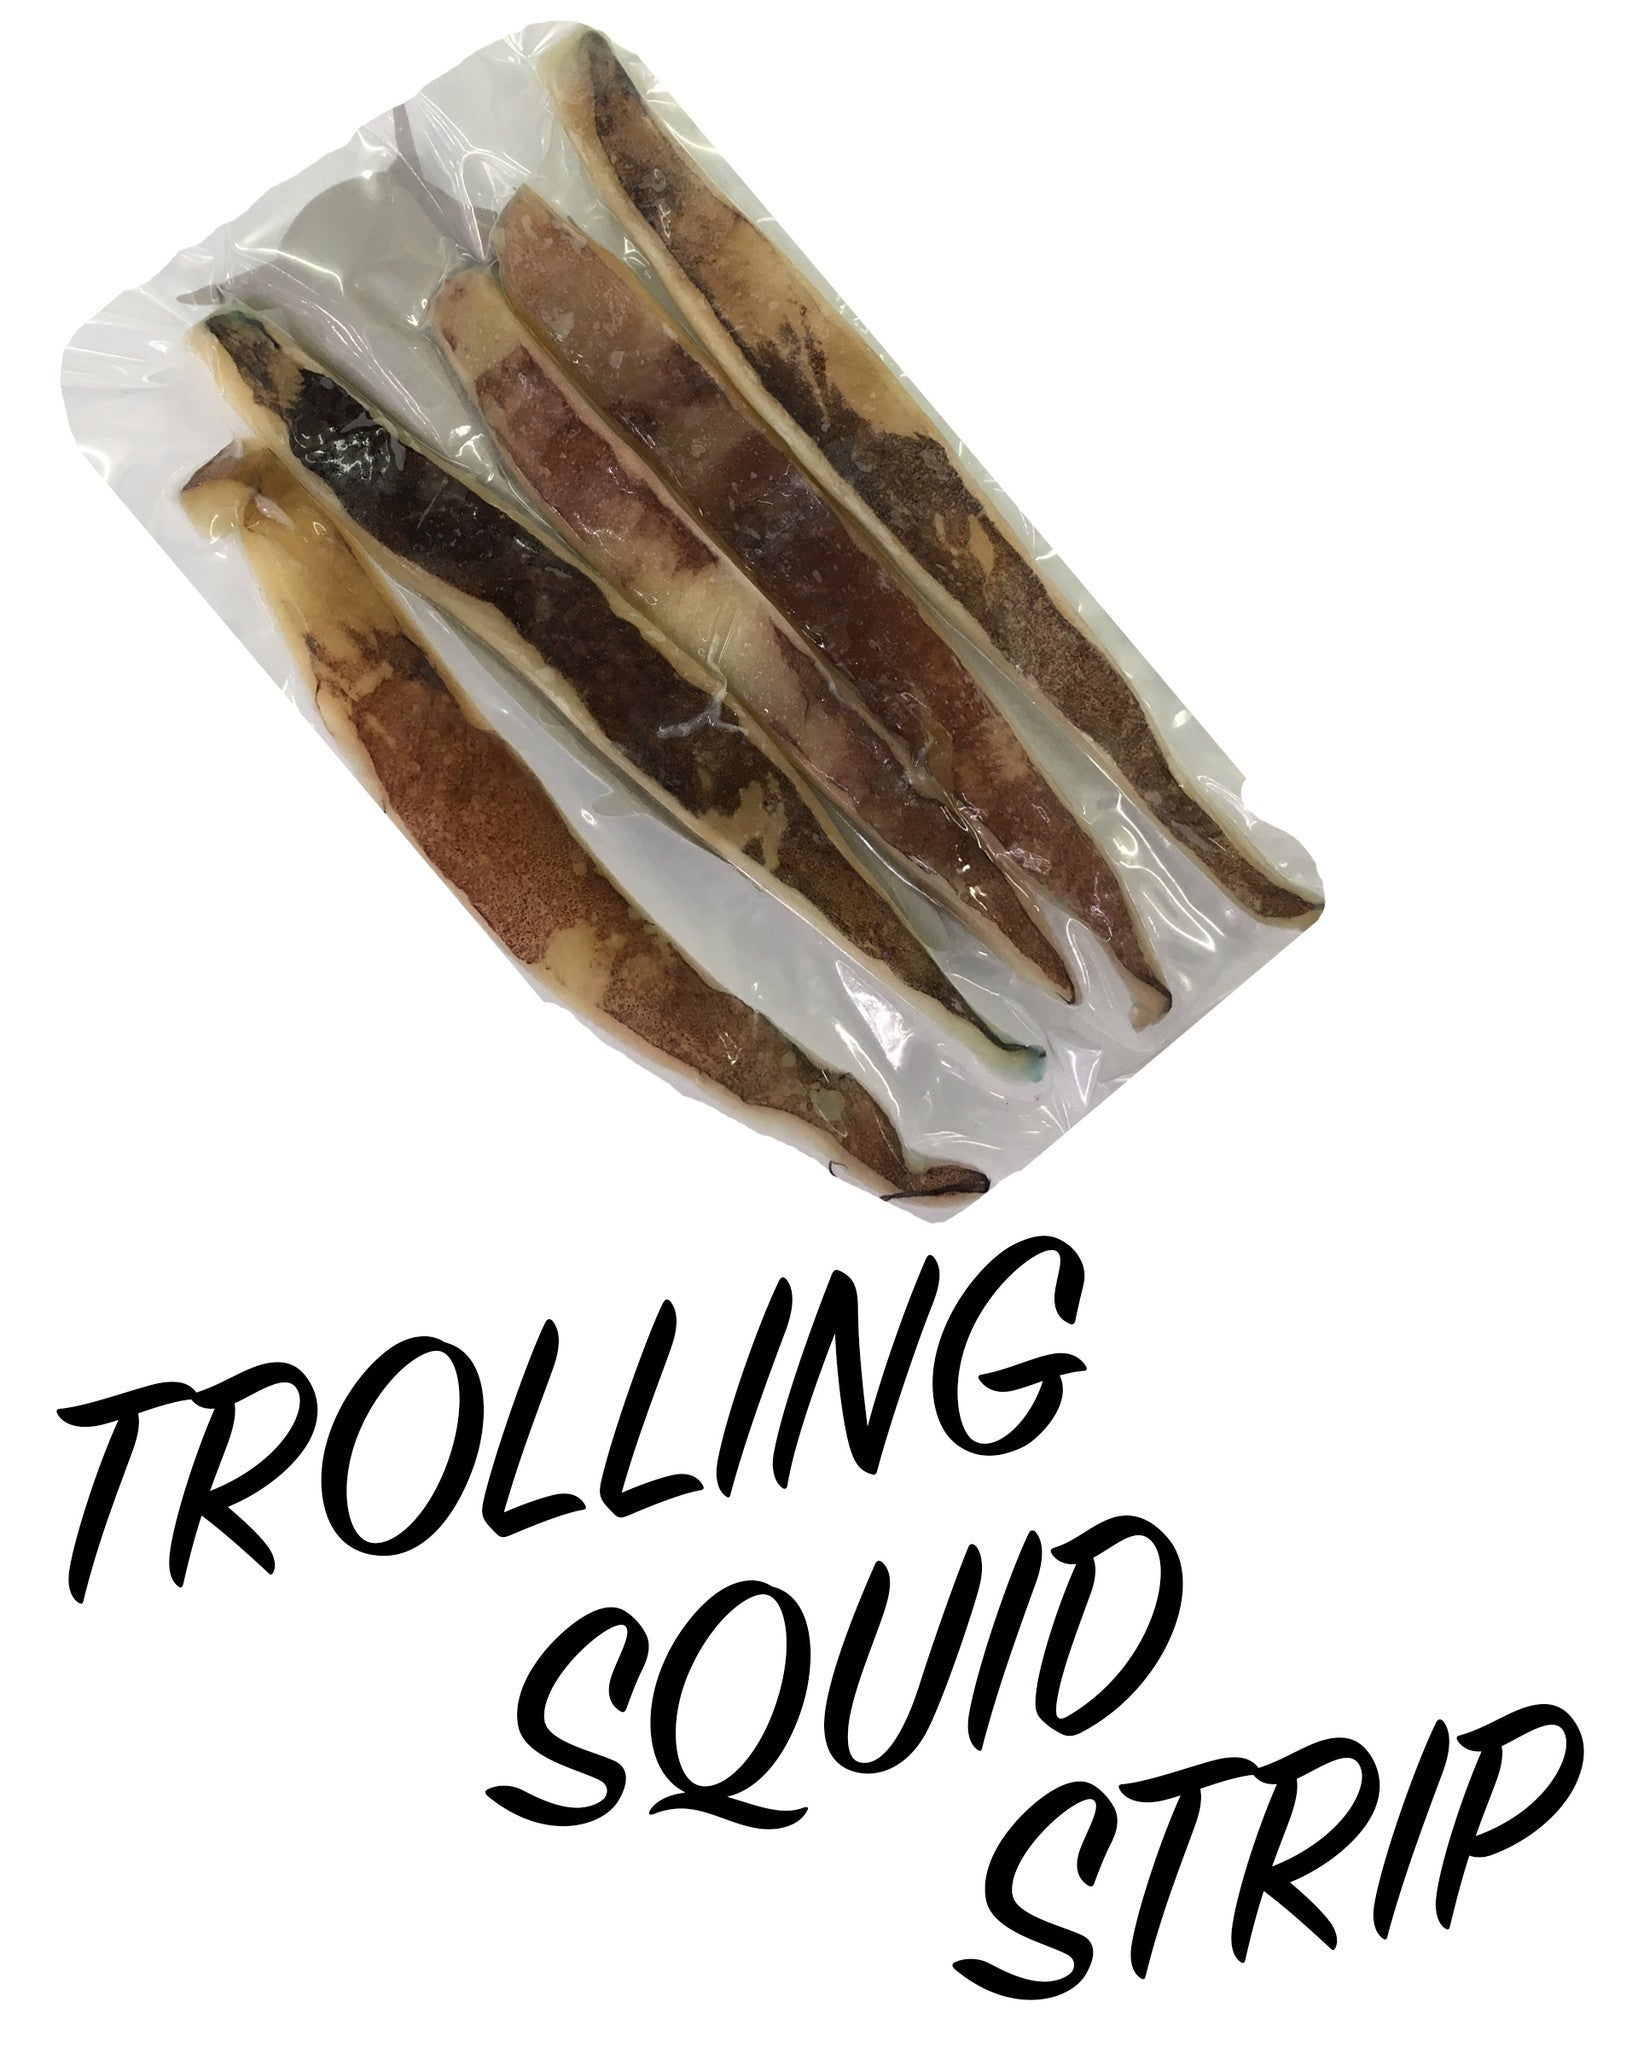 Trolling Squid Strips*